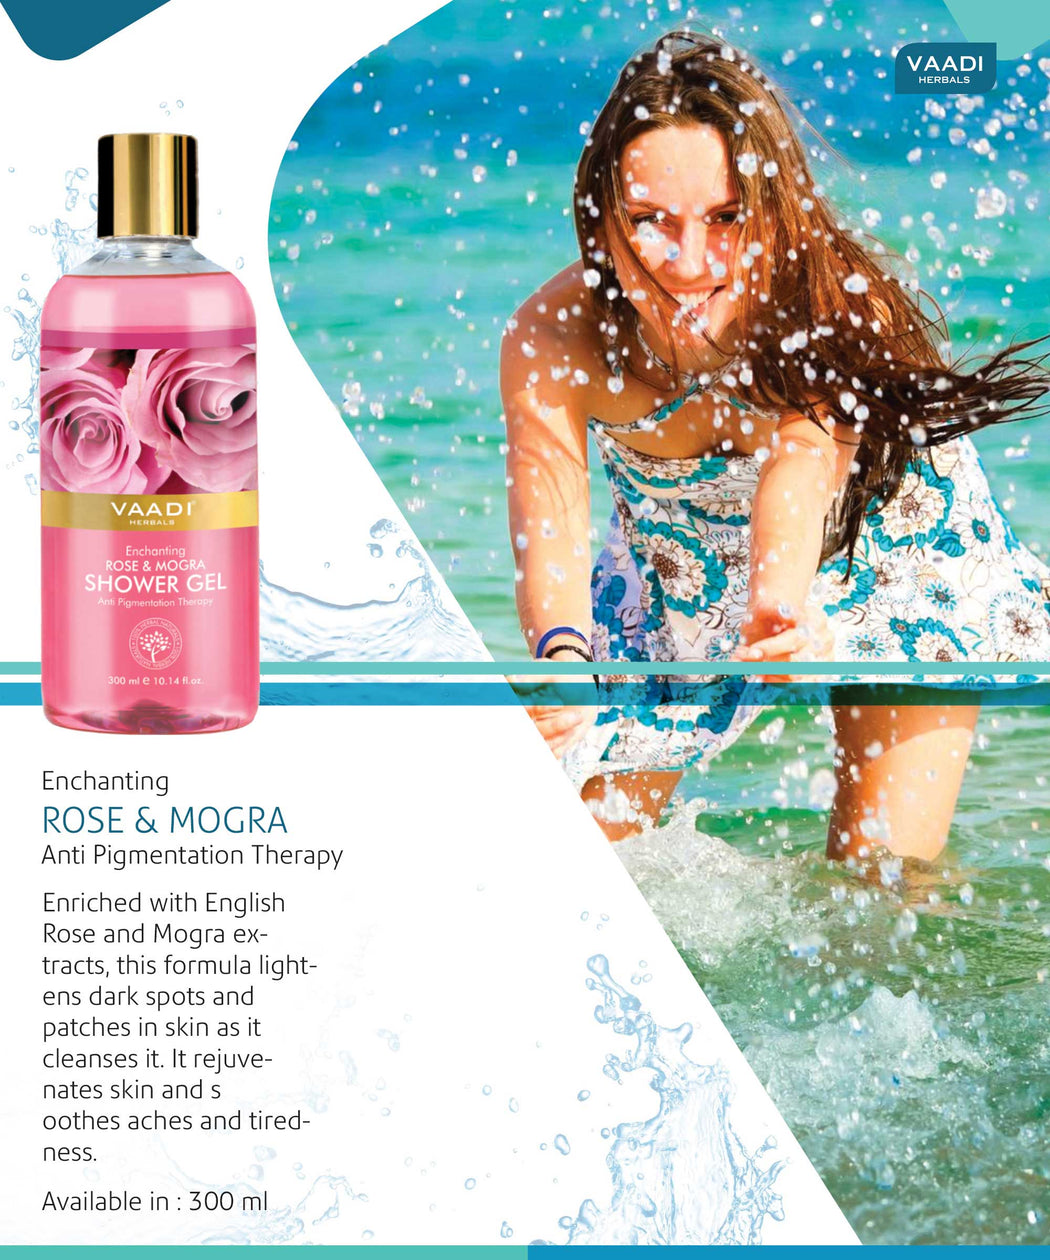 Enchanting Organic Rose & Mogra Shower Gel - Skin Brightening Therapy - Lightens Spots & Patches (3 x 300 ml / 10.2 fl oz)